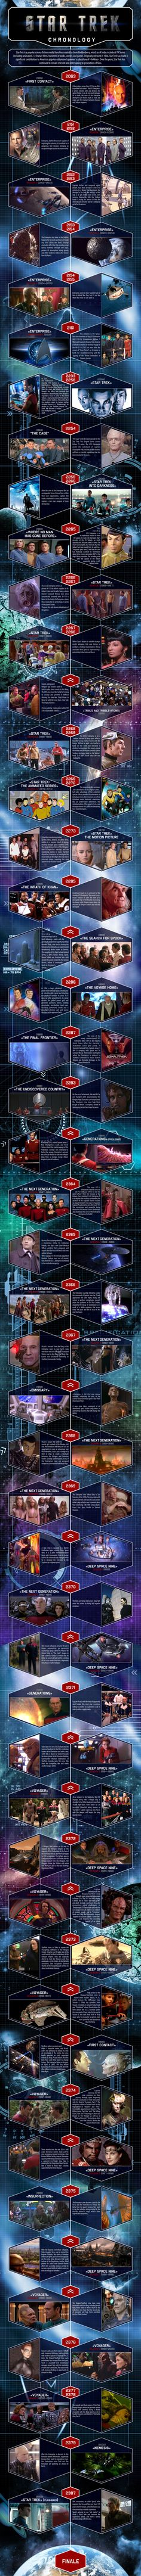 Check out this fantastic Star Trek Episodes Timeline graphic!